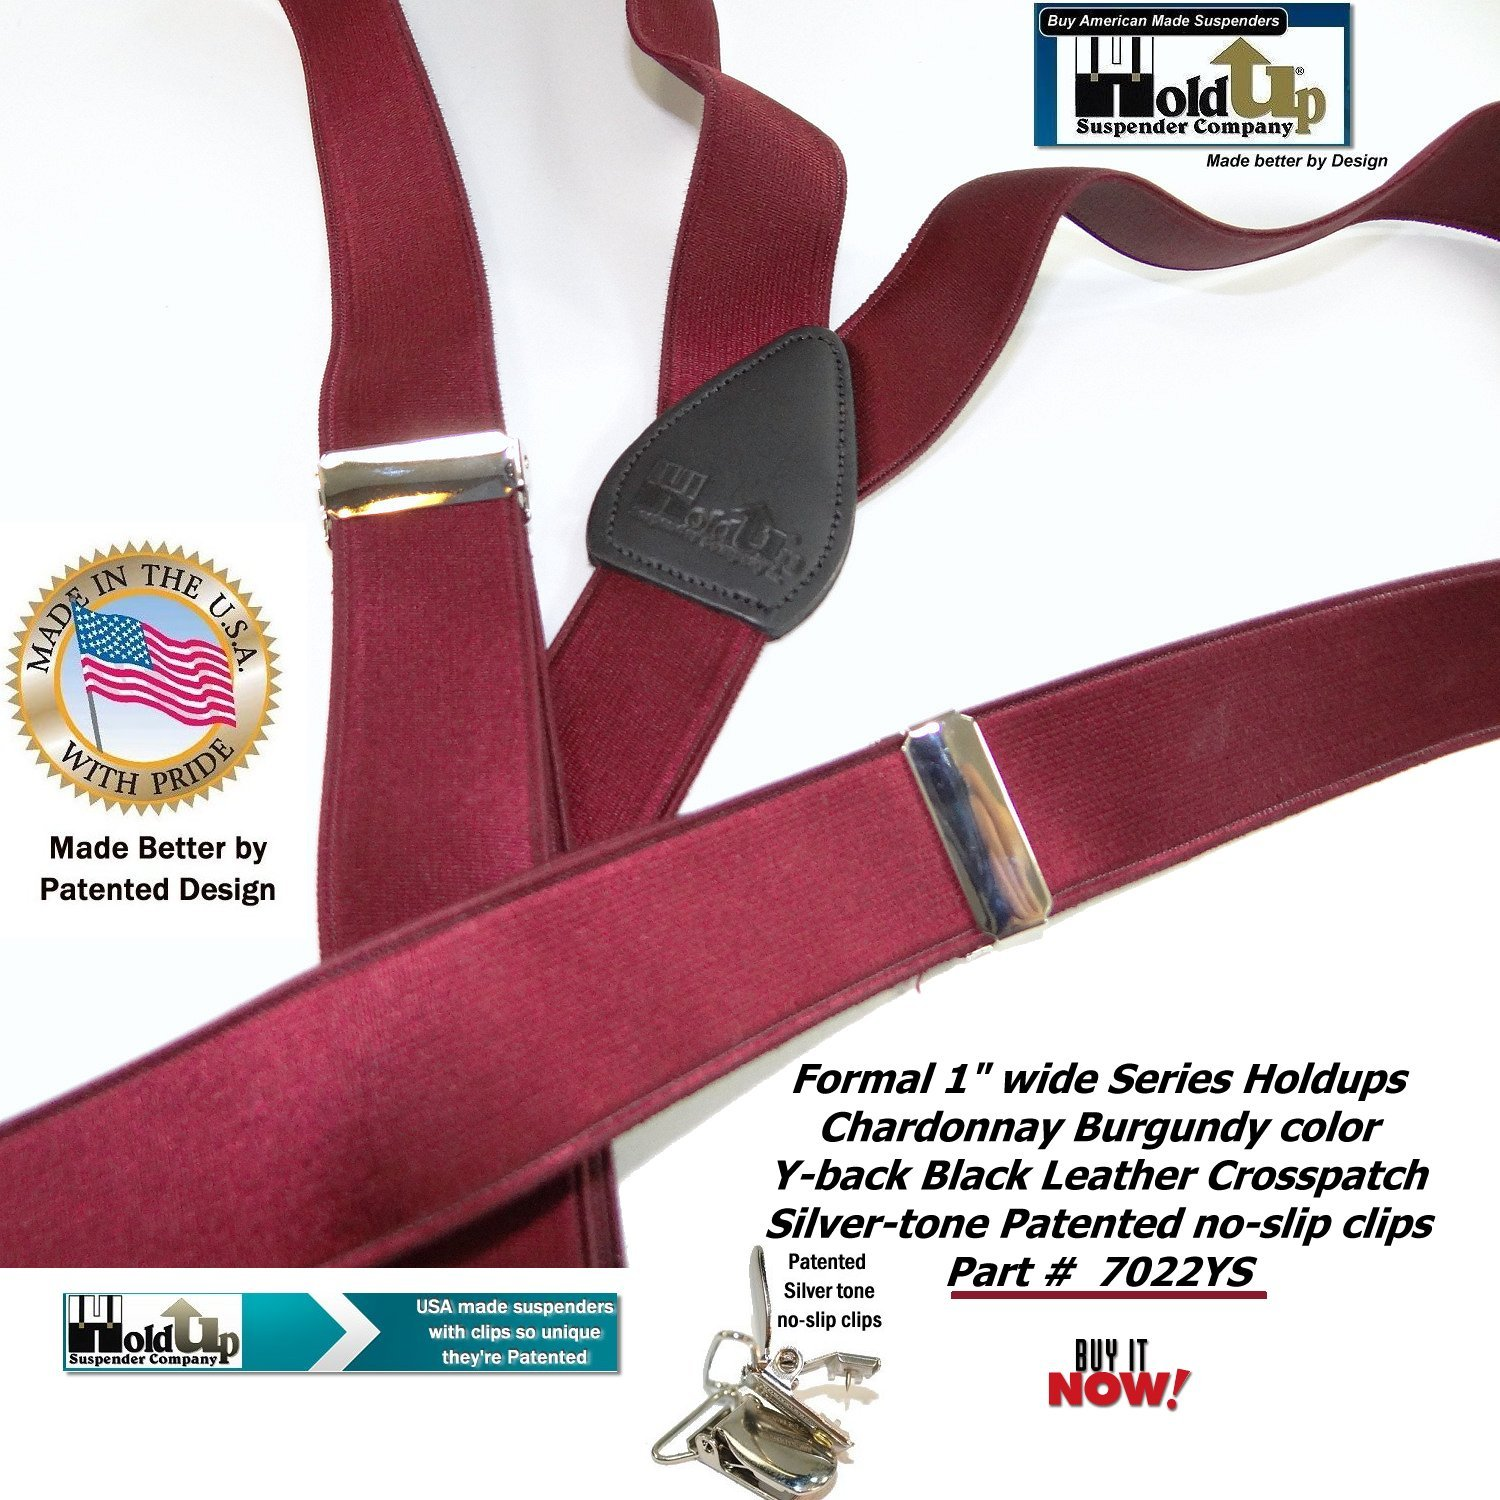 3fb385ebdee Holdup Suspender Company s Y-back Formal Series Chardonnay Burgundy Wine  Colored Men s Suspenders with Silver No-Slip Clips at Amazon Men s Clothing  store